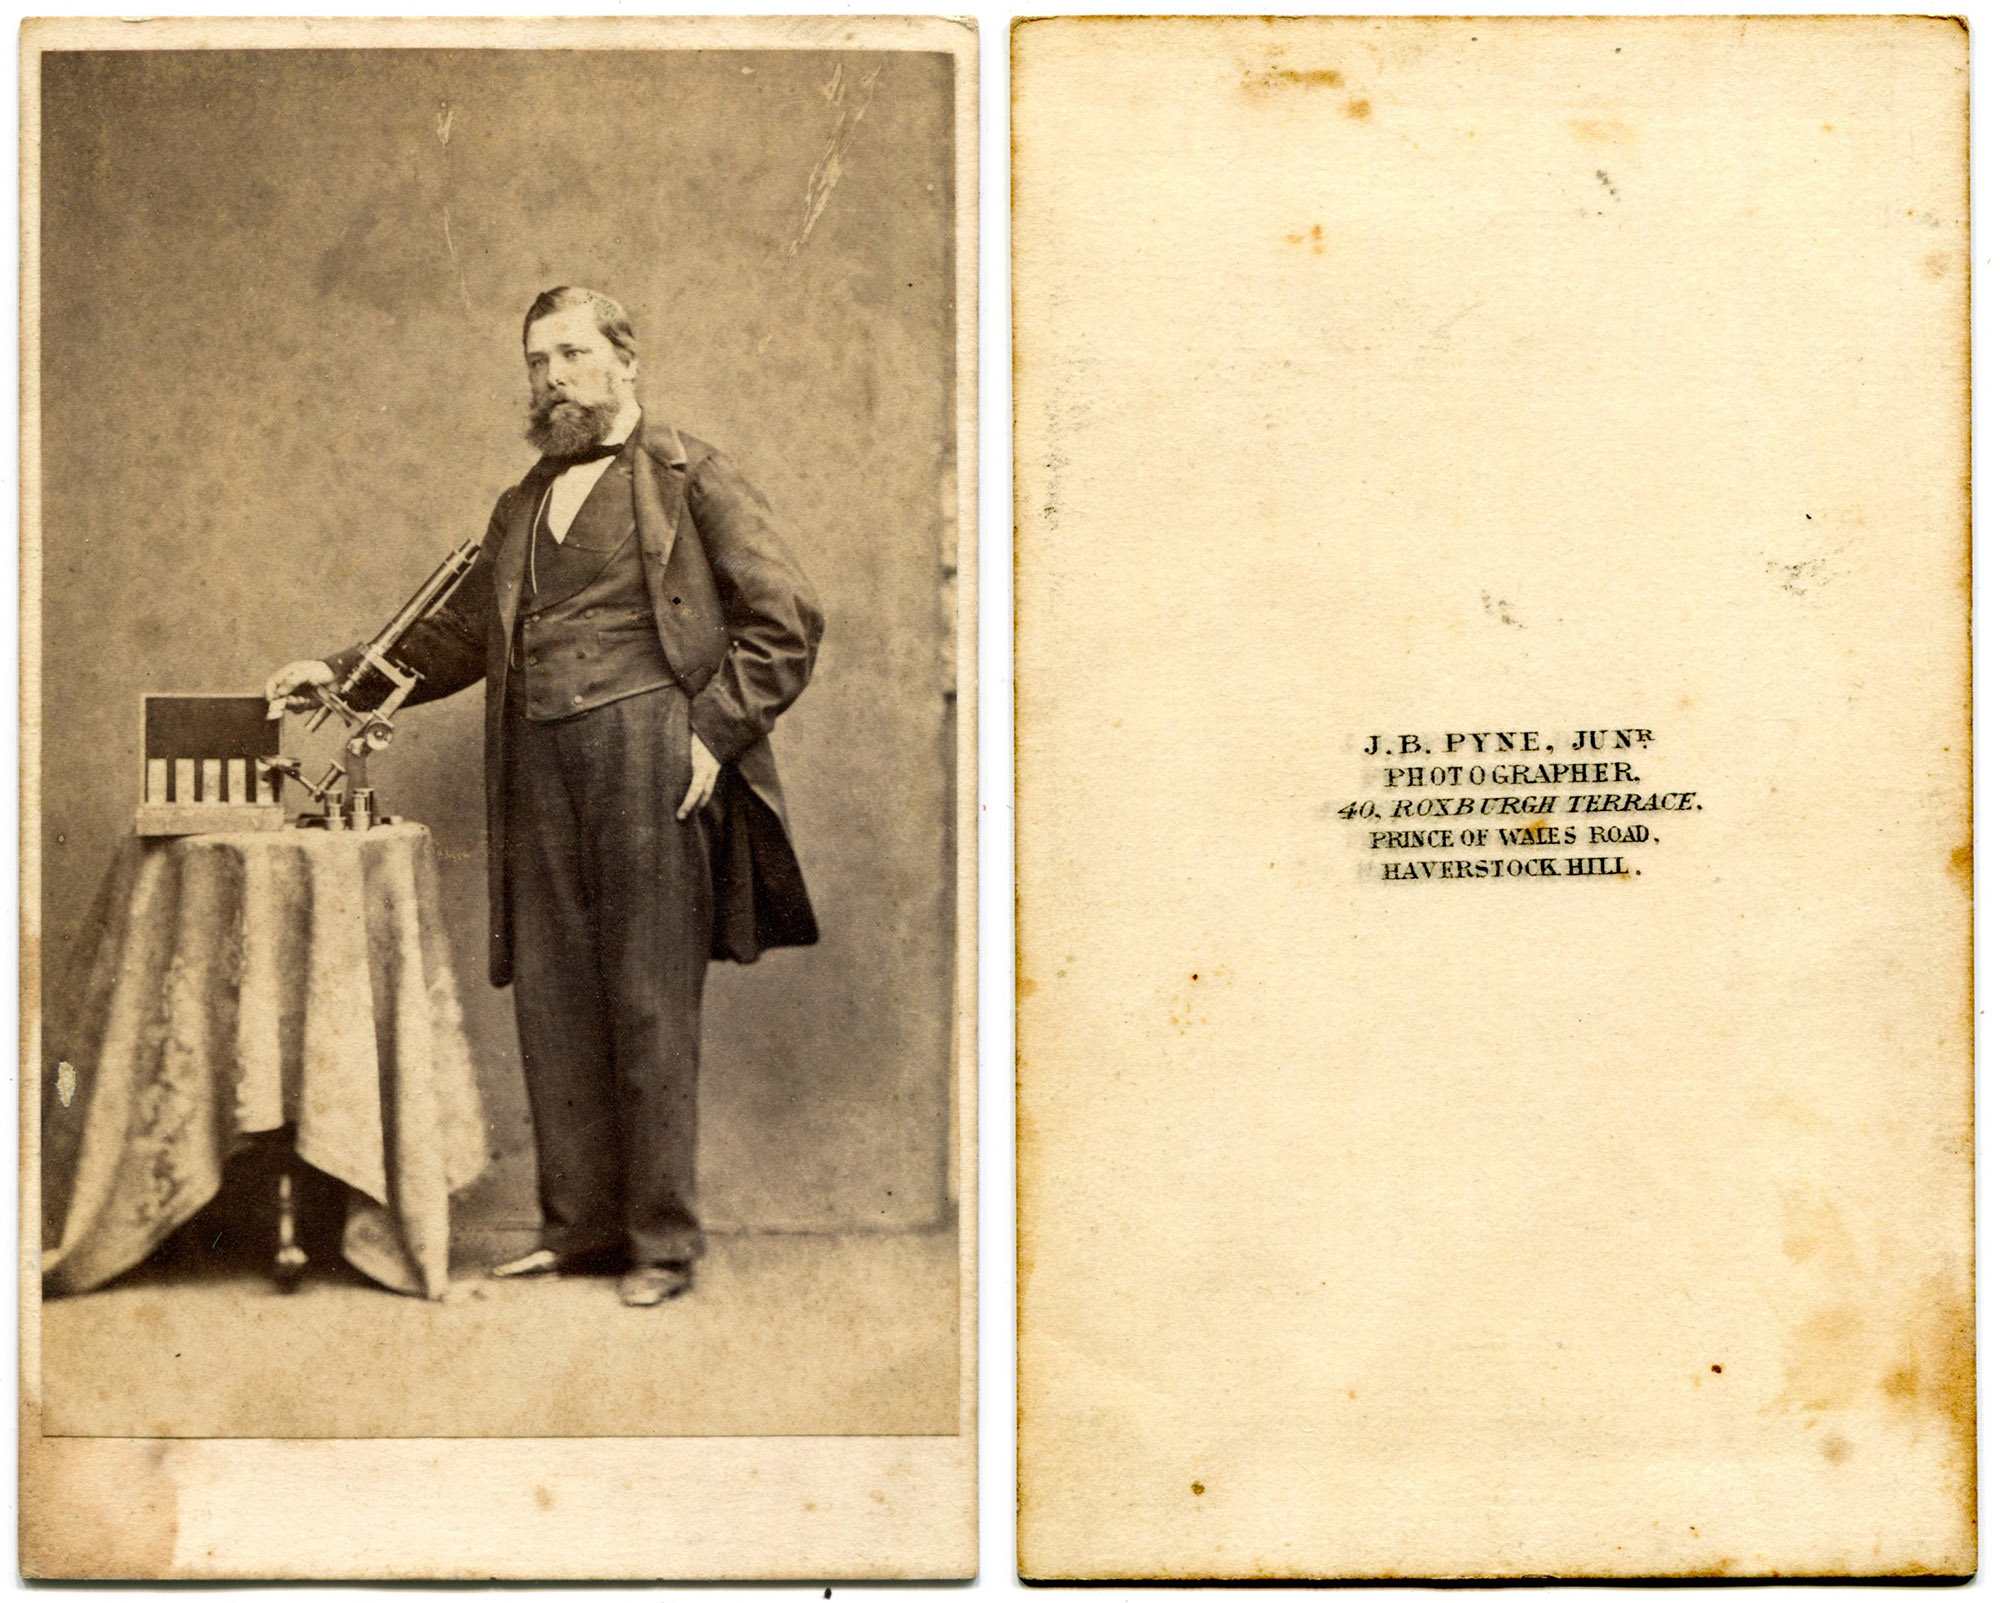 Carte De Visite CDV Of A Gent With His Subtantial Bar Limb Microscope And Slide Collection The Photographer PB Pyne Operated At 40 Roxburgh Terrace